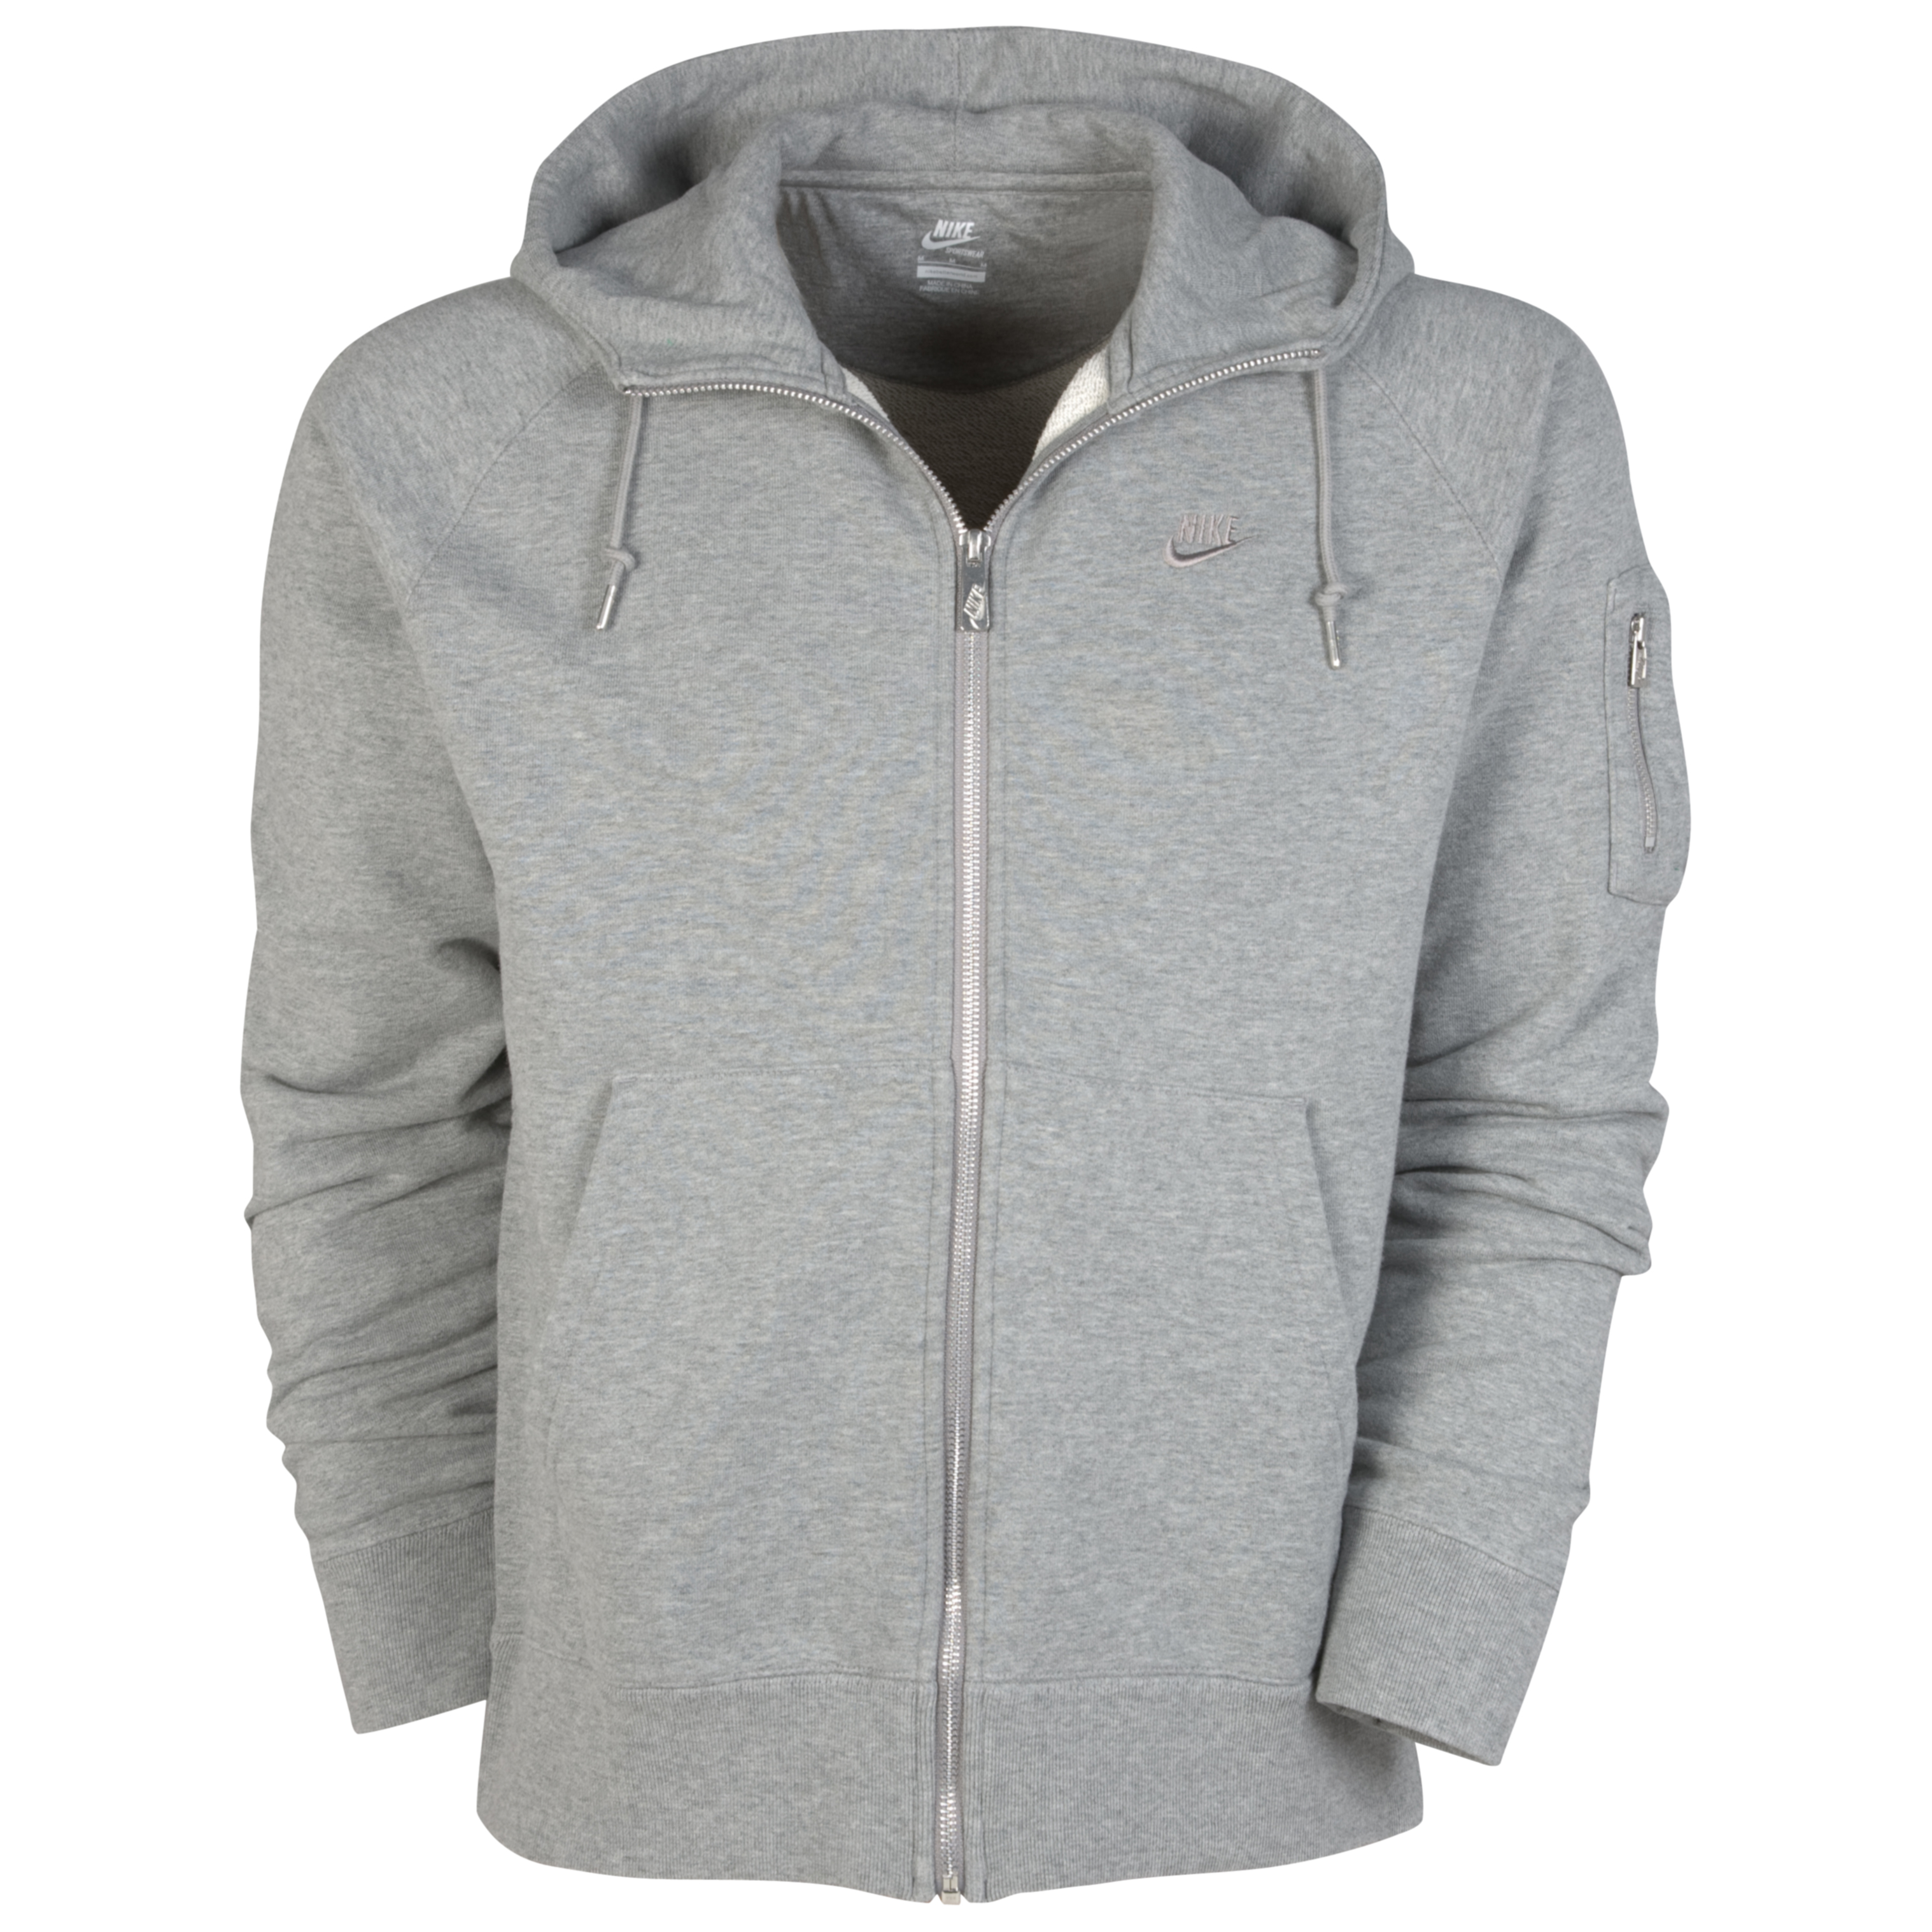 Nike AW77 Stadium Full Zip Hoody - Dark Grey Heather/Medium Grey